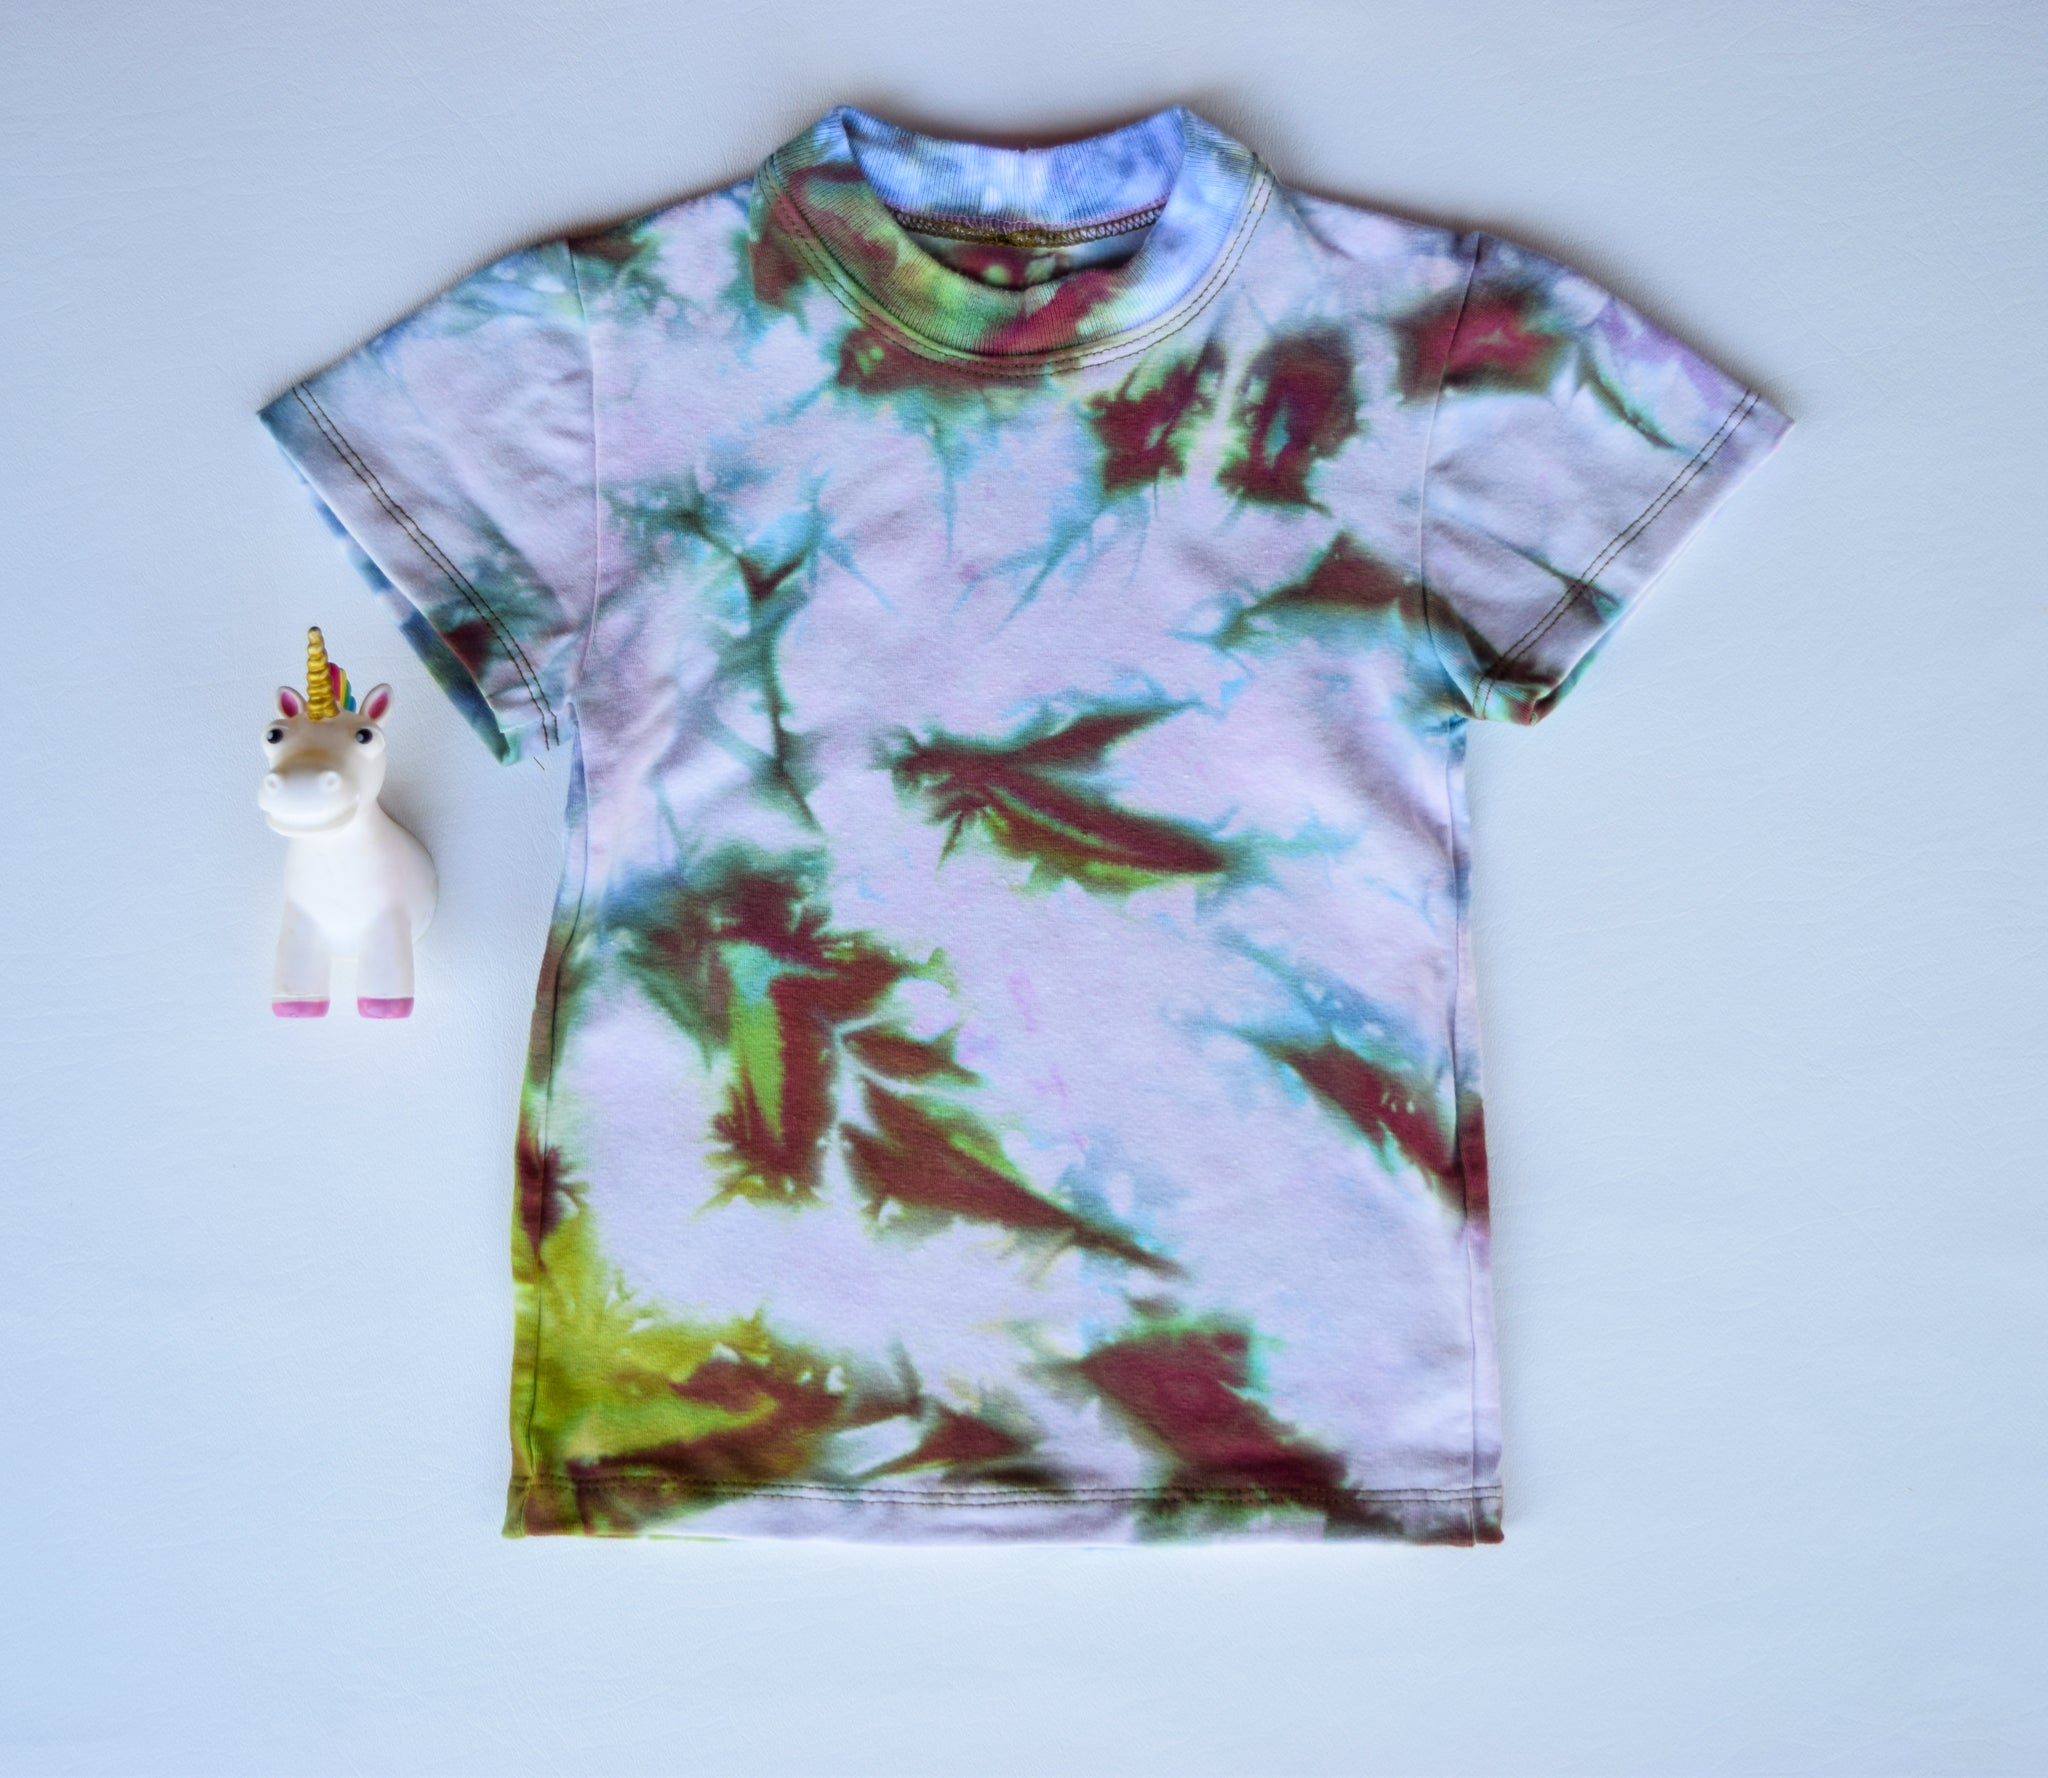 Size 2t, Earthly Elements, LWI Tie Dyed, Standard Tee, short sleeves